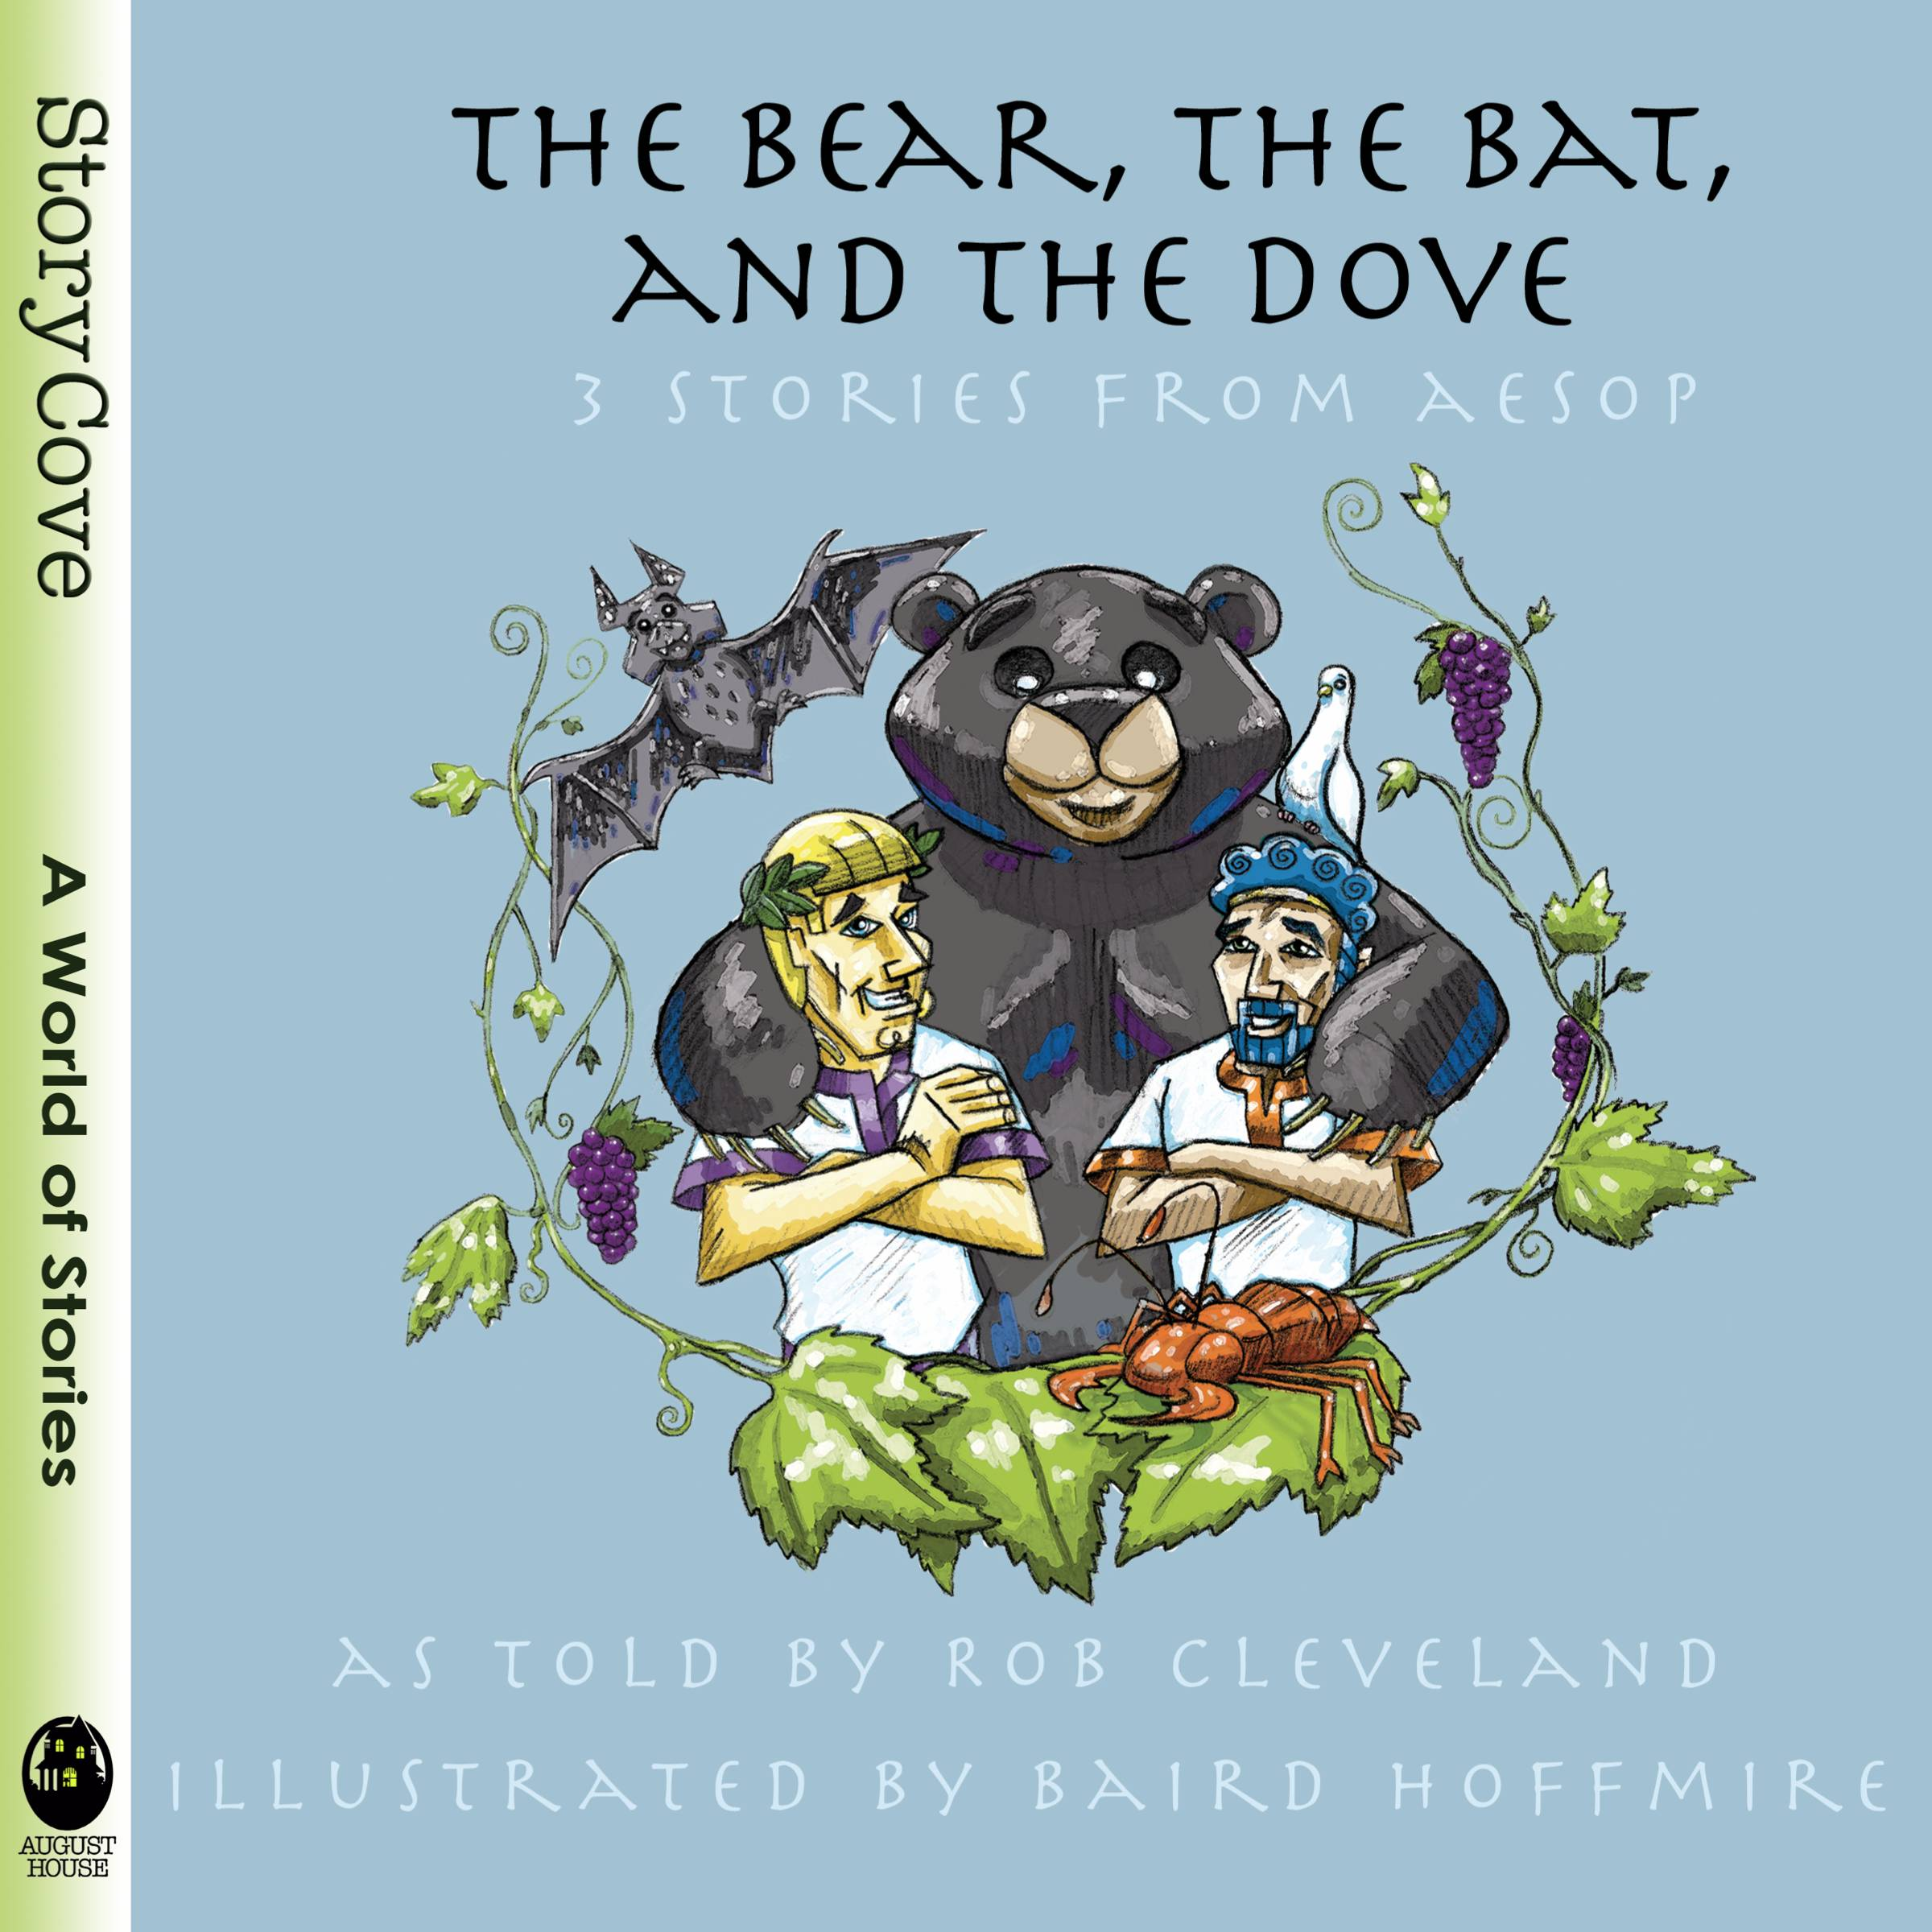 The Bear, the Bat, and the Dove: Three Stories from Aesop